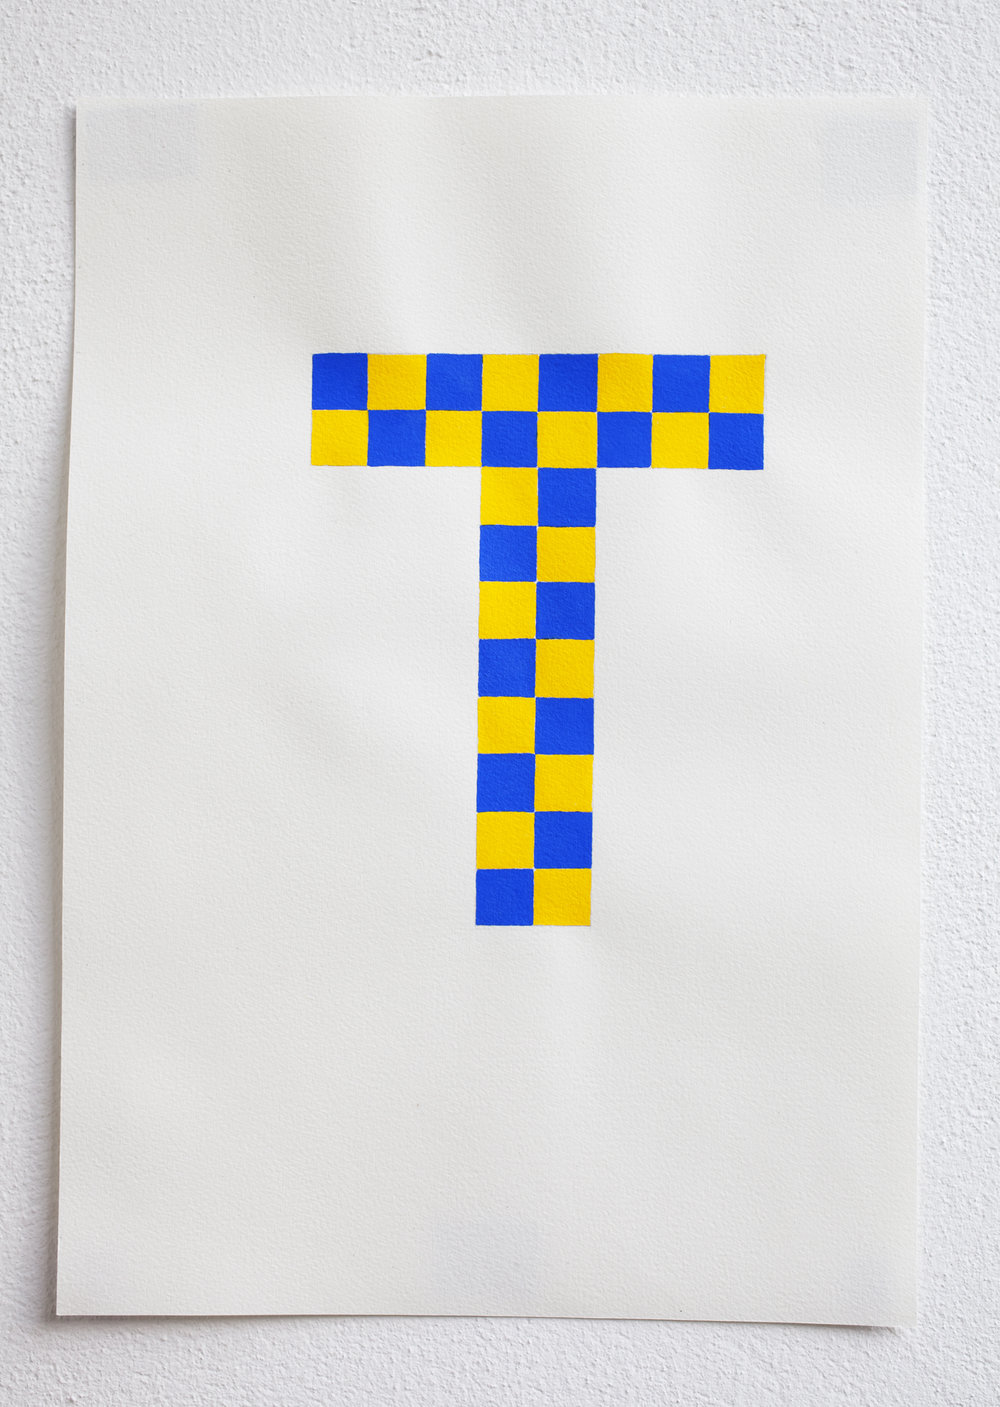 Untitled, 2011, gouache on paper